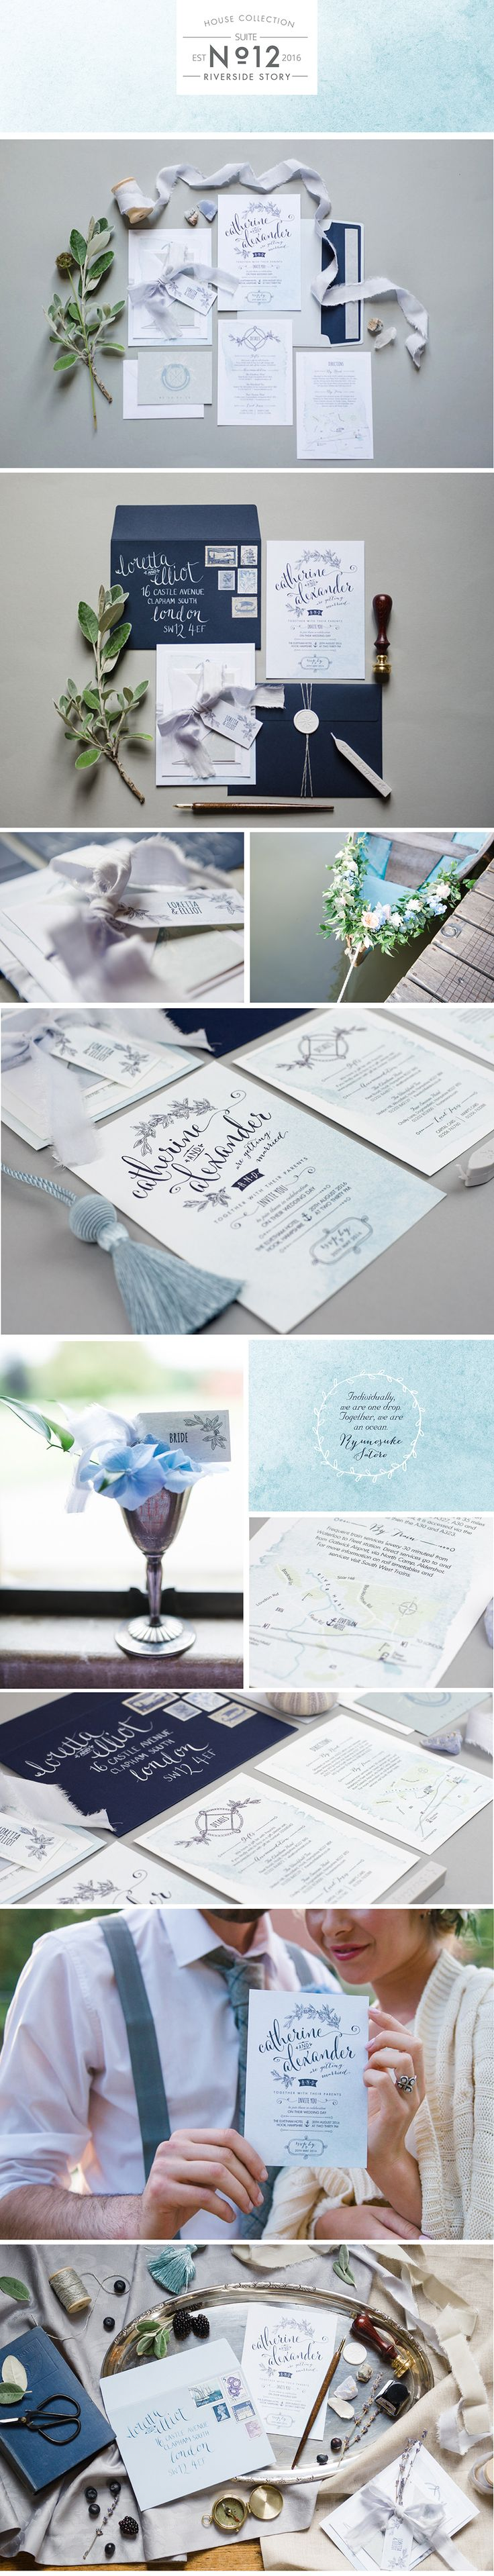 52 Best Invitations Images On Pinterest Destination Weddings